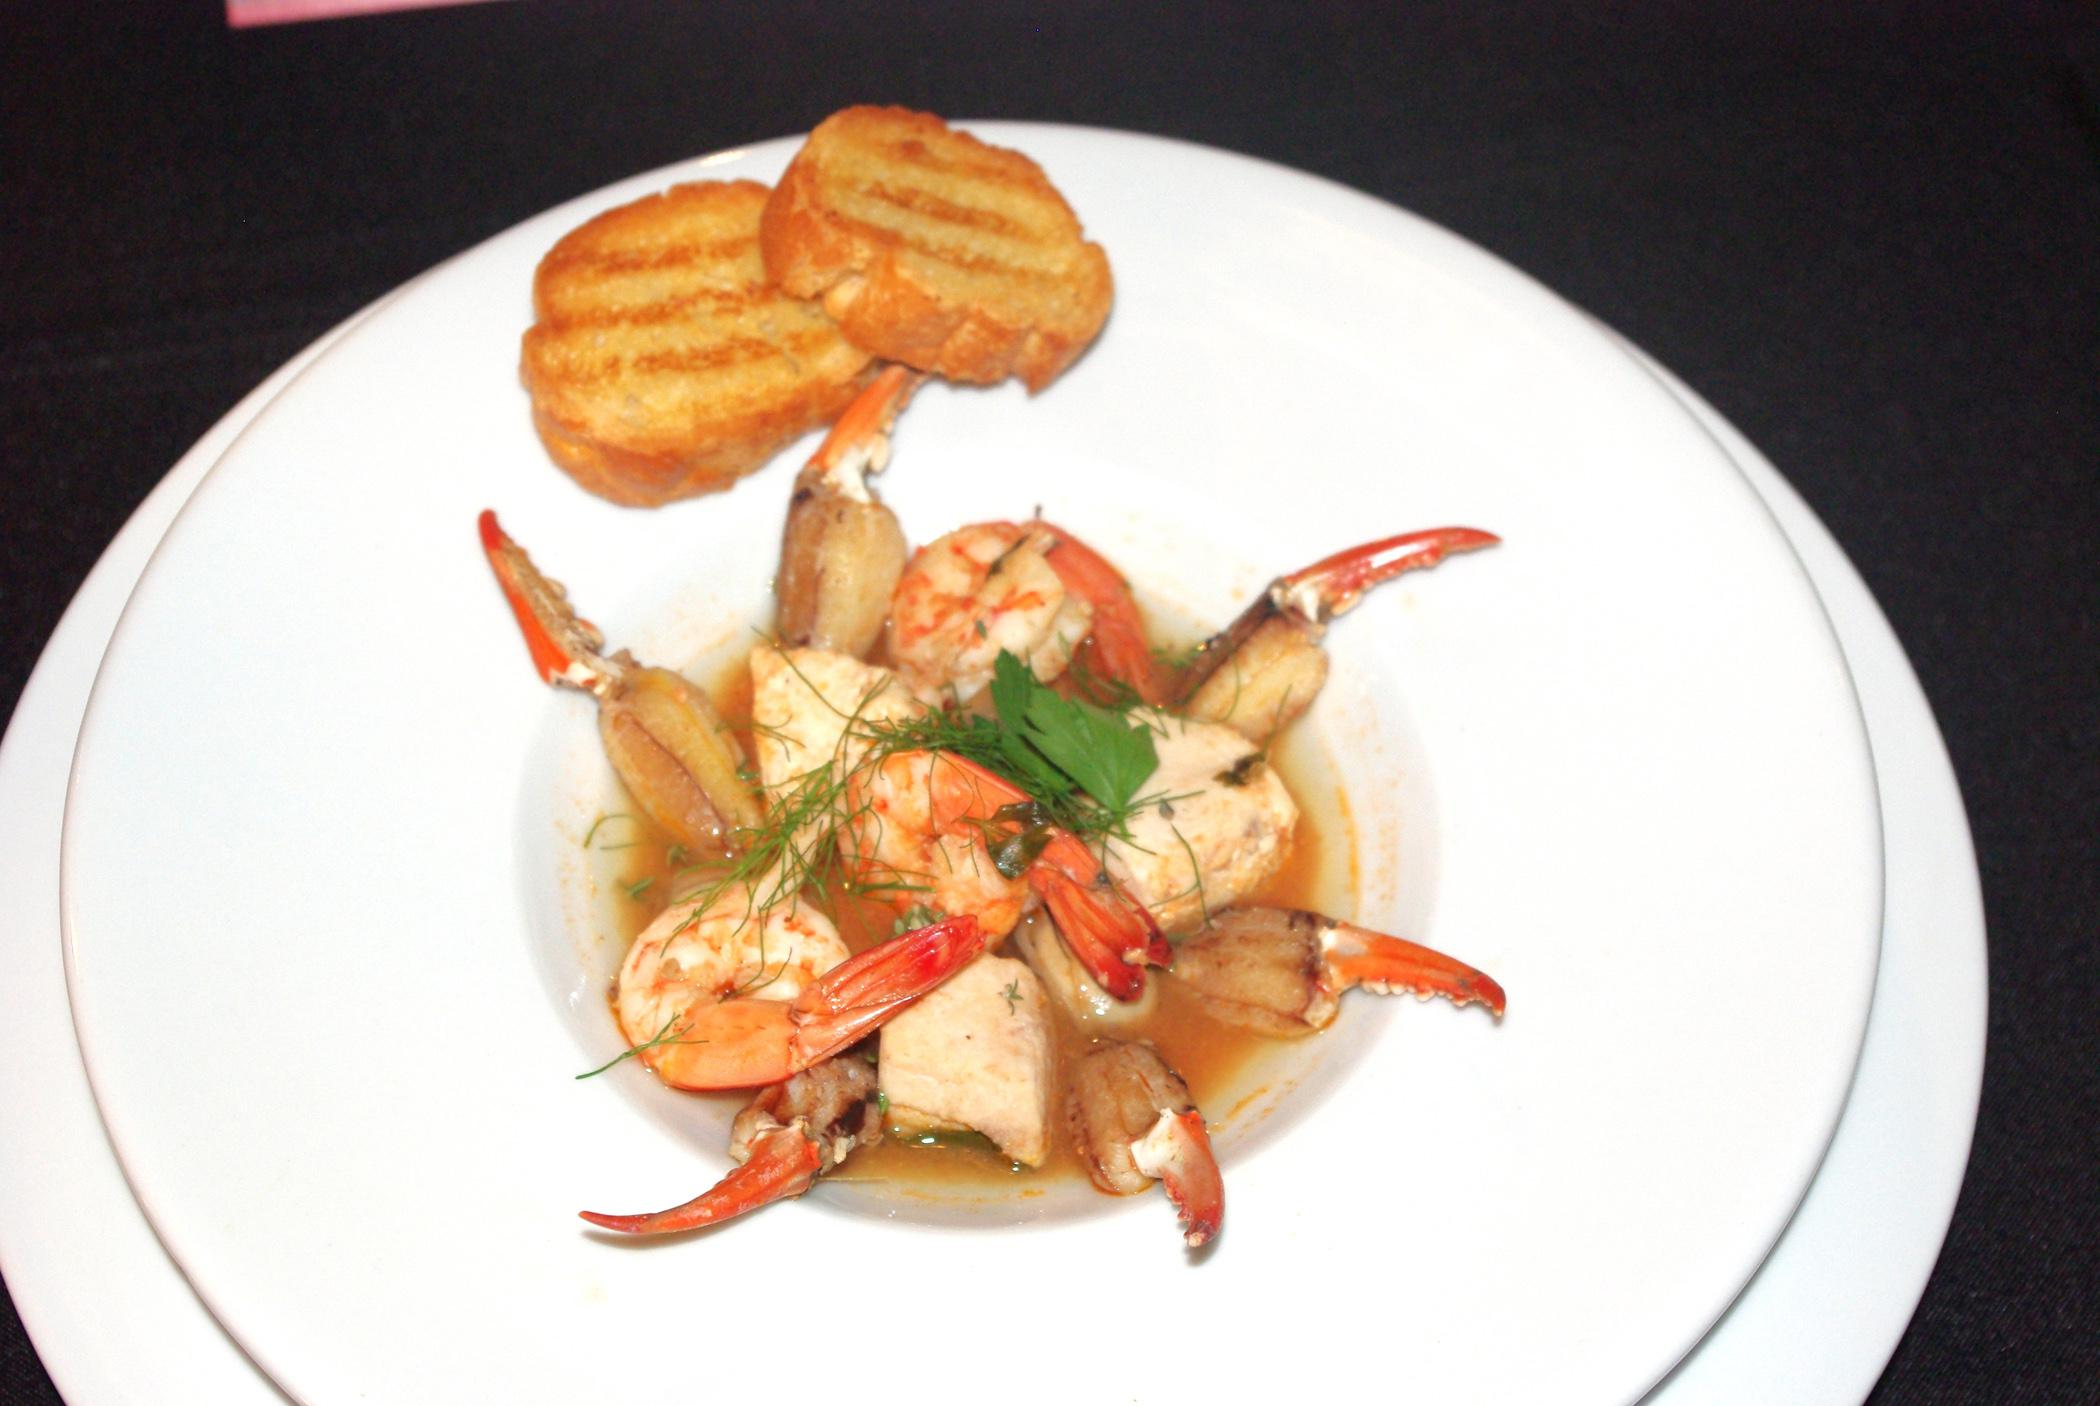 Members of the St. Martin High School 4-H Club won second place in the 2012 Great American Seafood Cook Off Aug. 12 in New Orleans with their Gulf Coast Bouillabaisse recipe, featuring Gulf Coast shrimp, blue crab, oysters, Wahoo fish and Mississippi-grown tomatoes. (Submitted Photo)